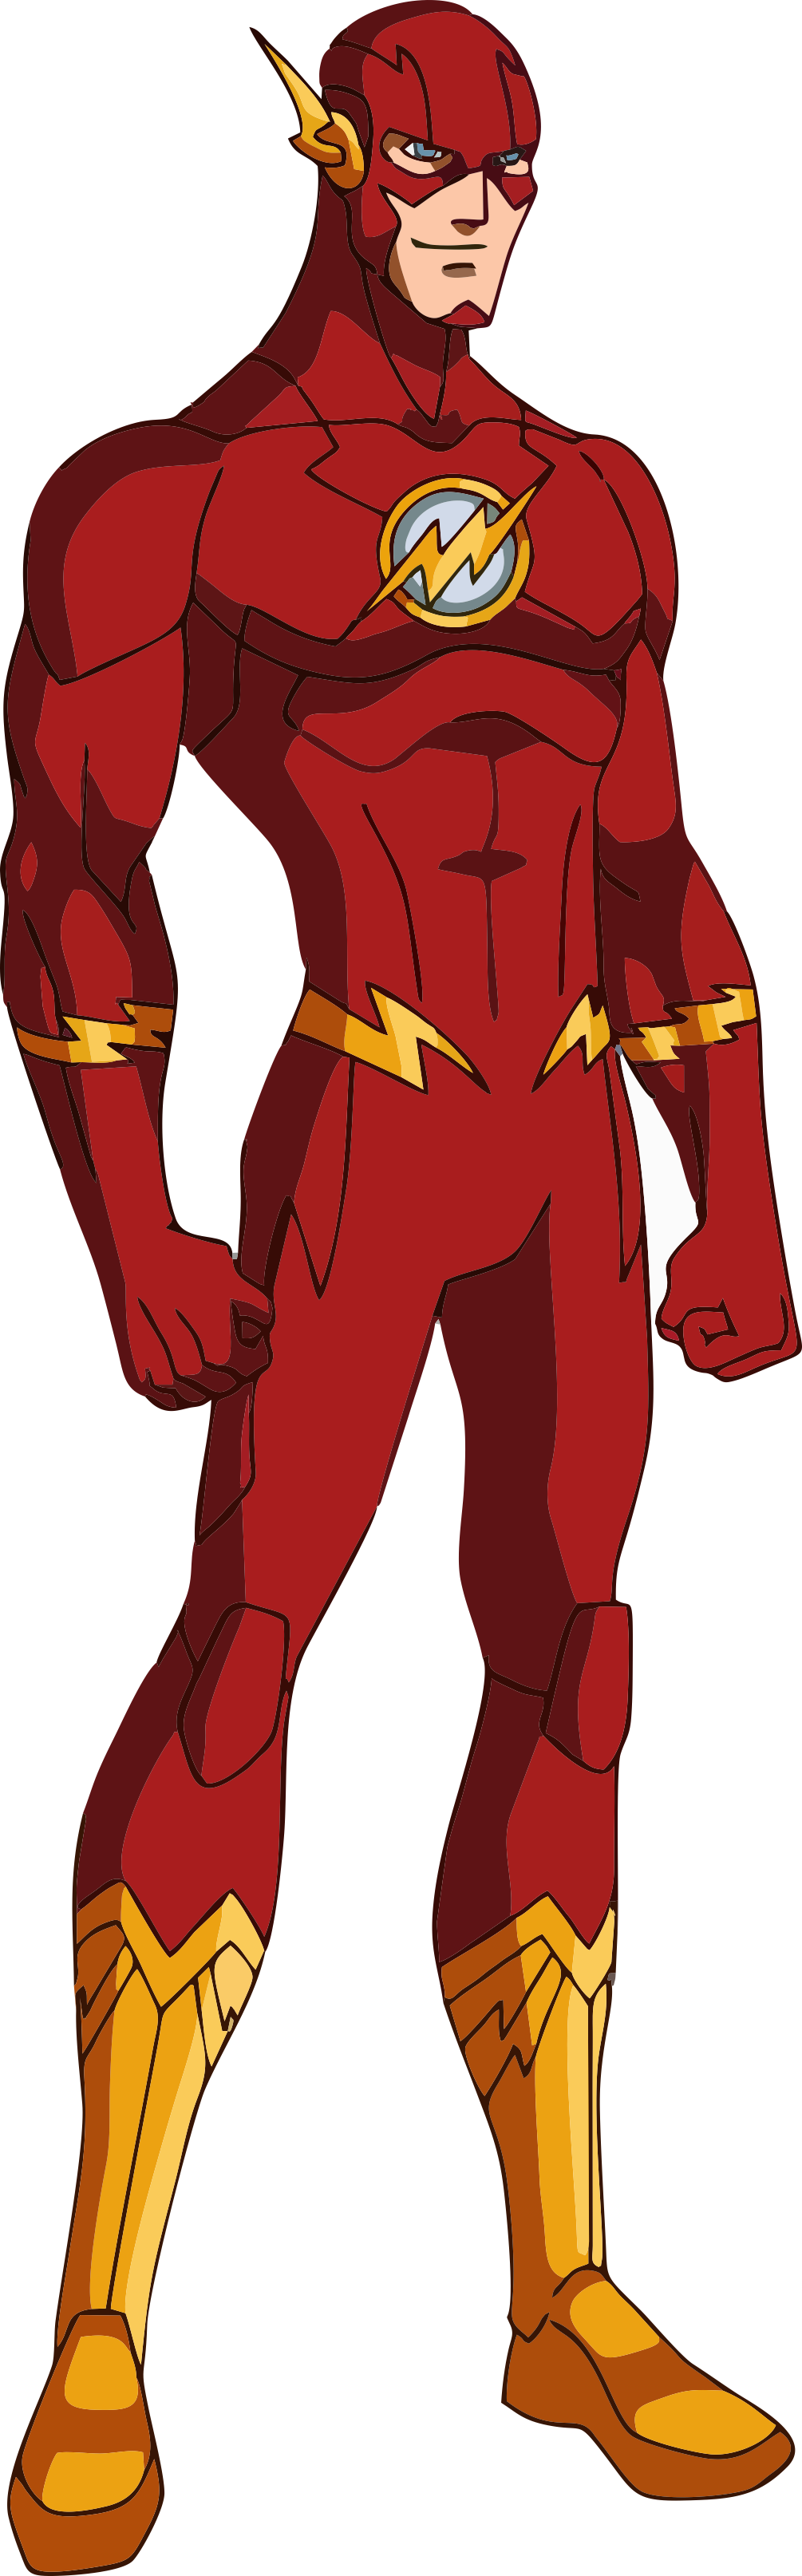 Flash clipart superhero body The png Heróis more! (1005×3228)